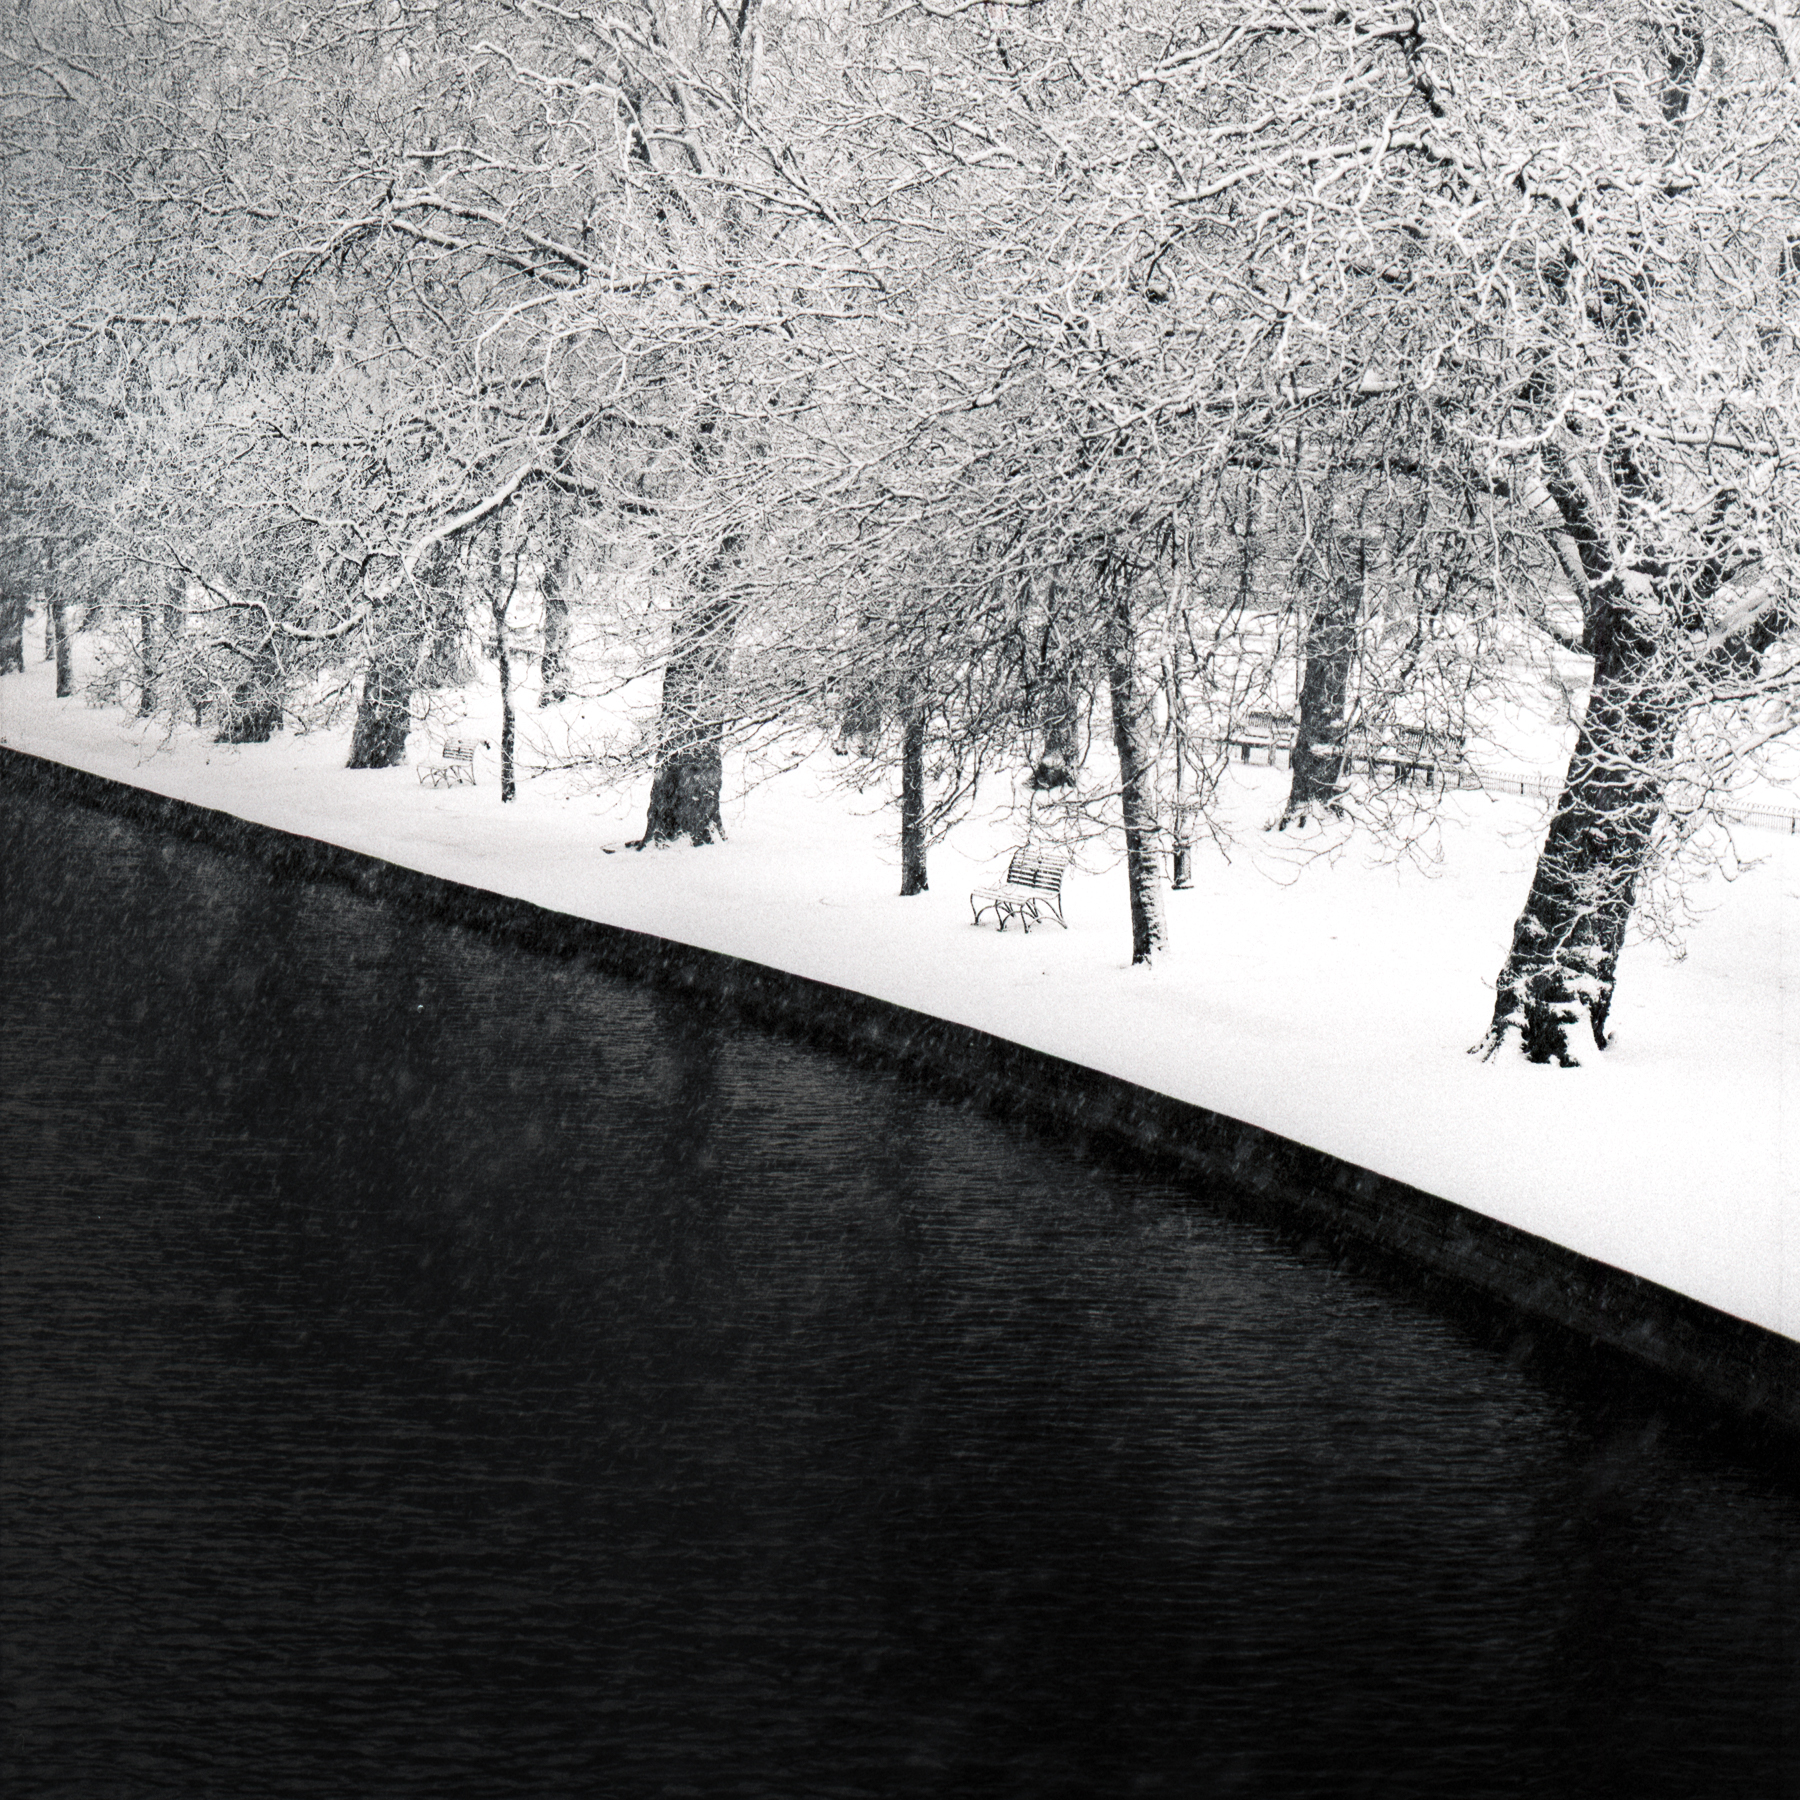 Darren Rose | Winter on The River Ouse | Hasselblad 500 C/M